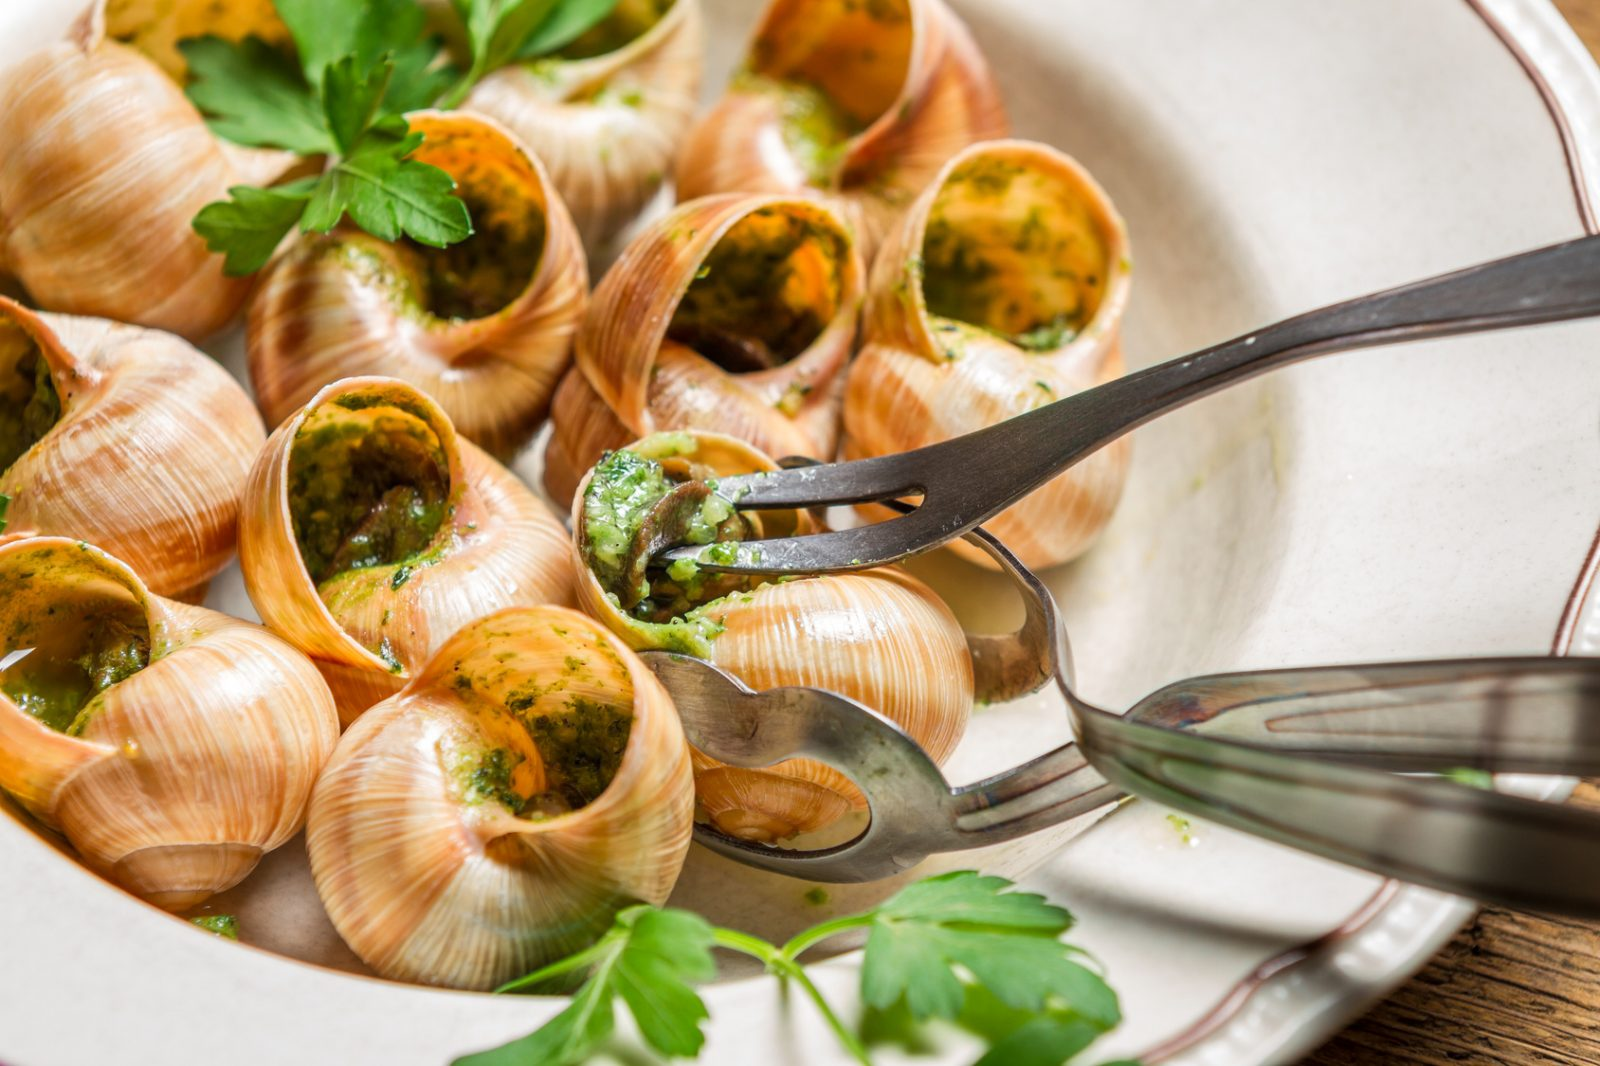 French escargots la bourguignonne magazine worldpass - Cuisine bourguignonne ...